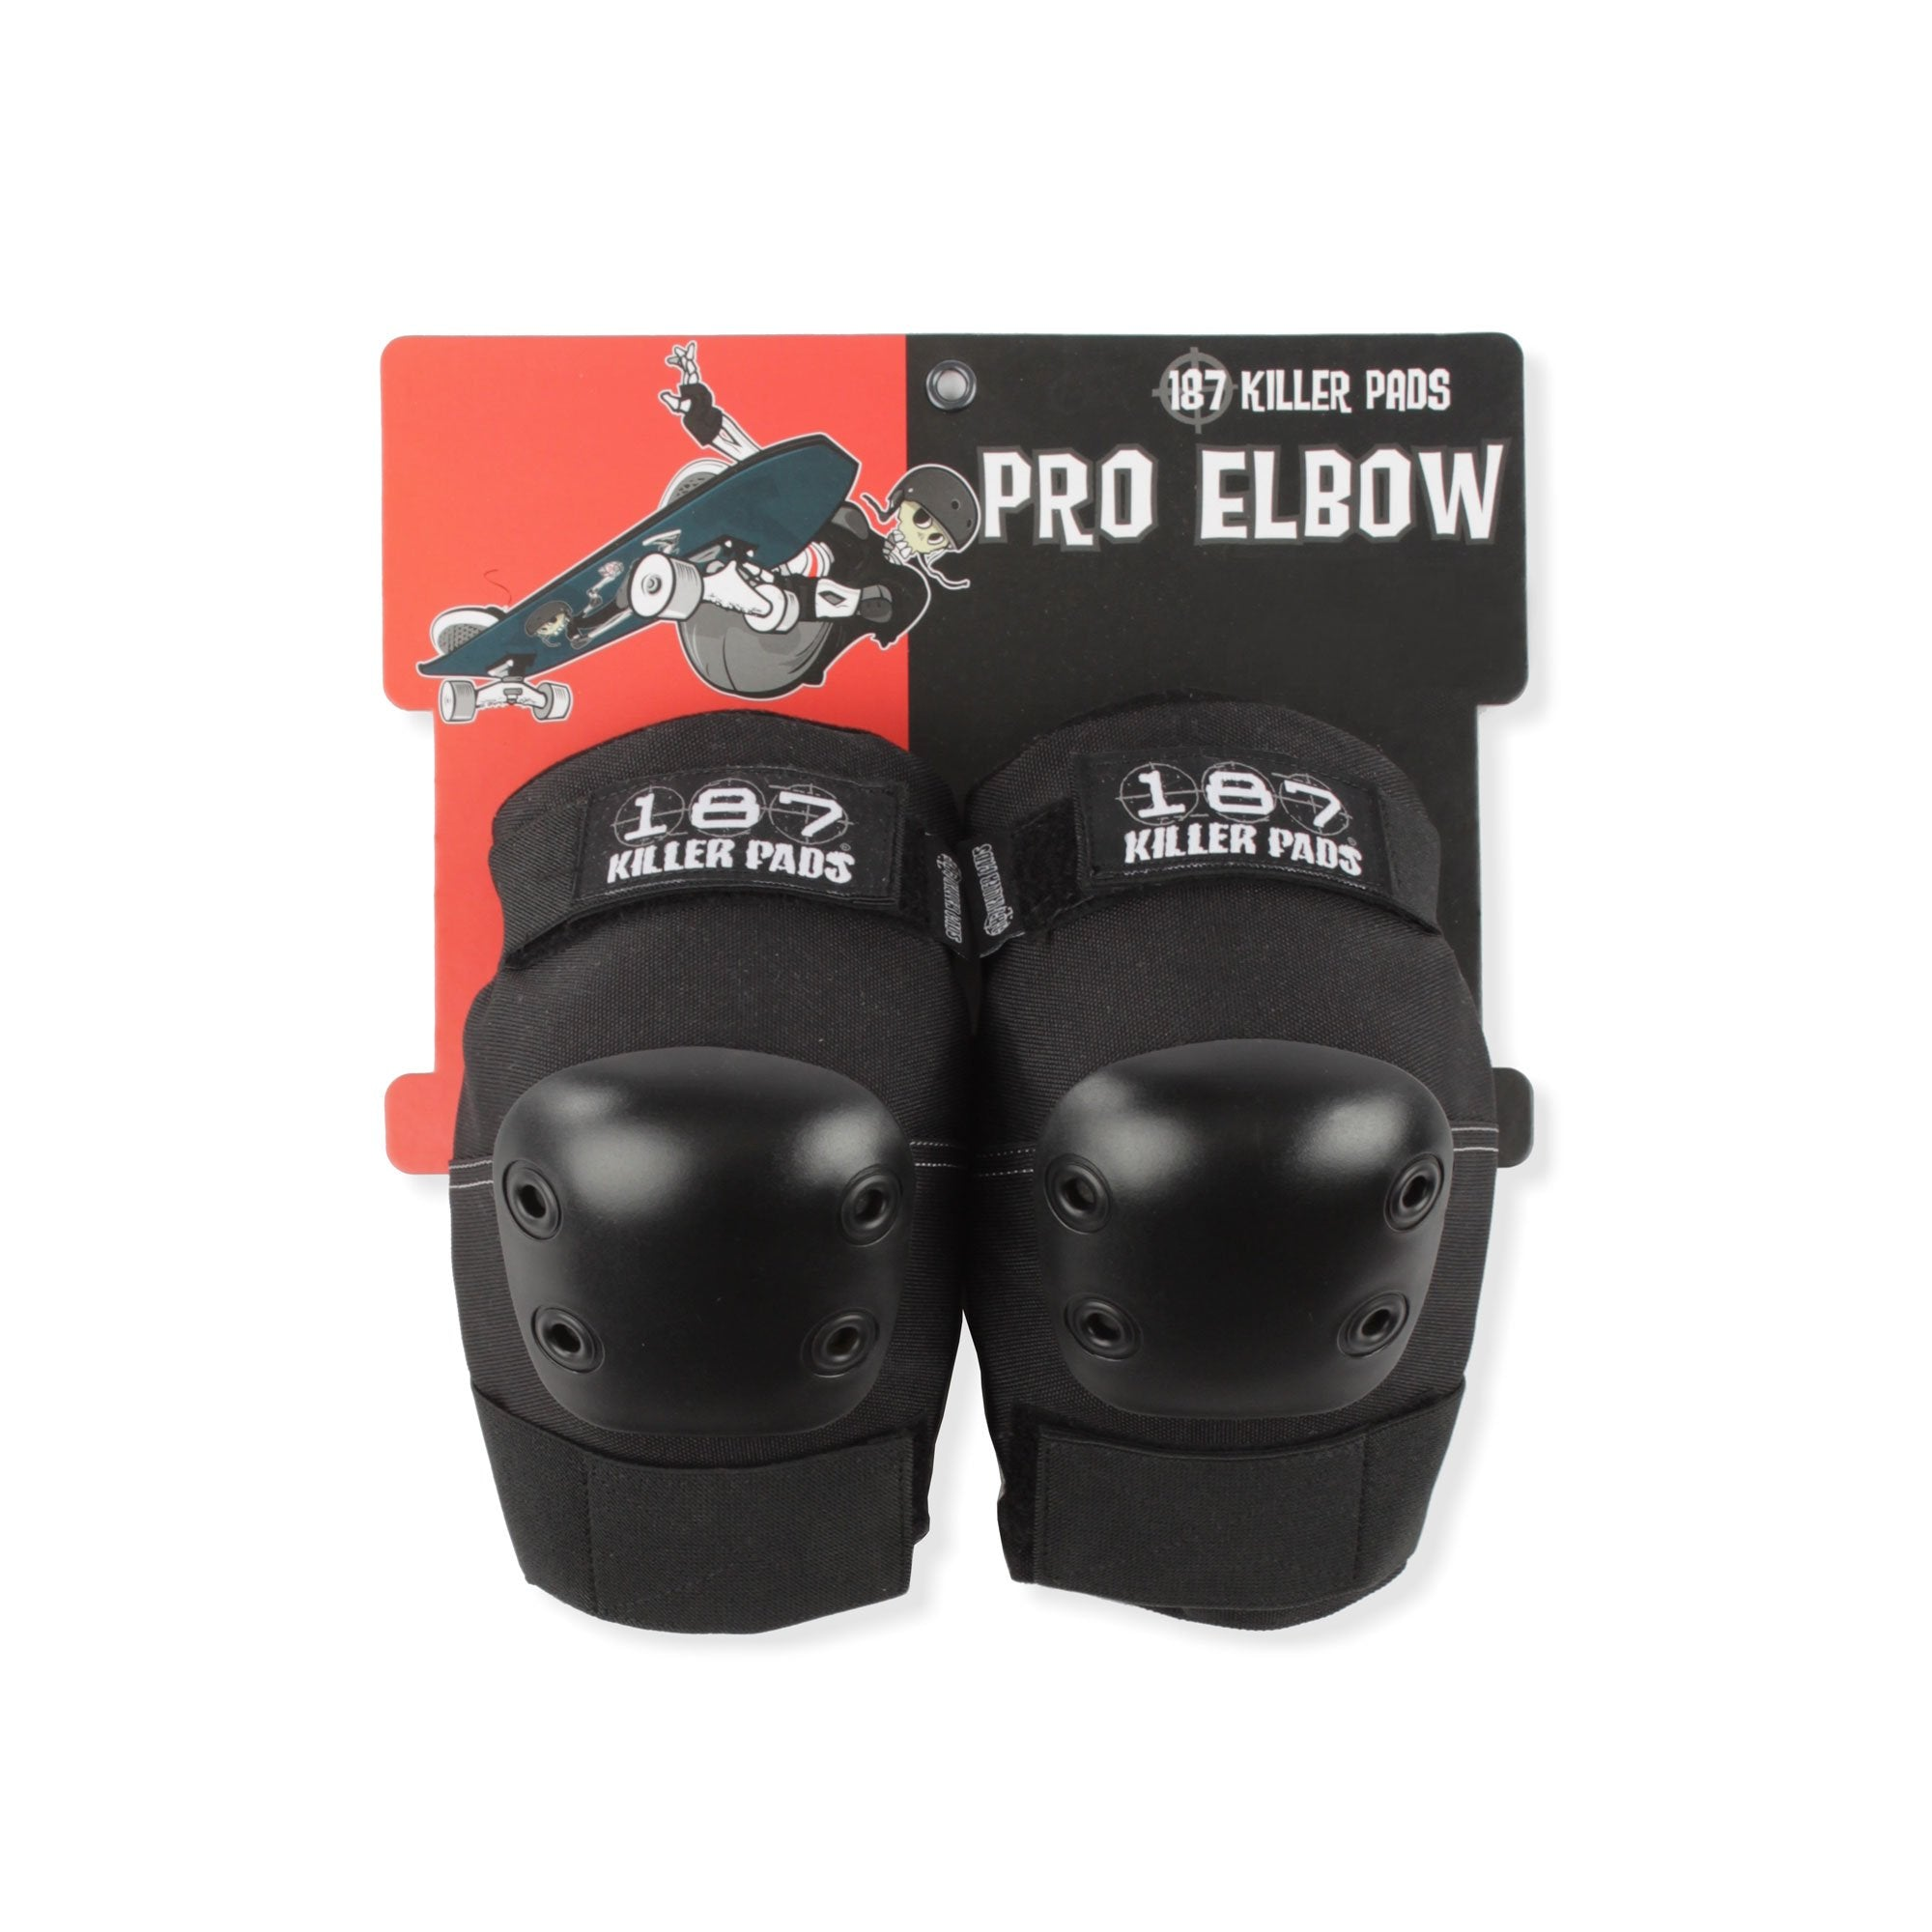 187 Killer Pads Pro Elbow Pads Product Photo #1